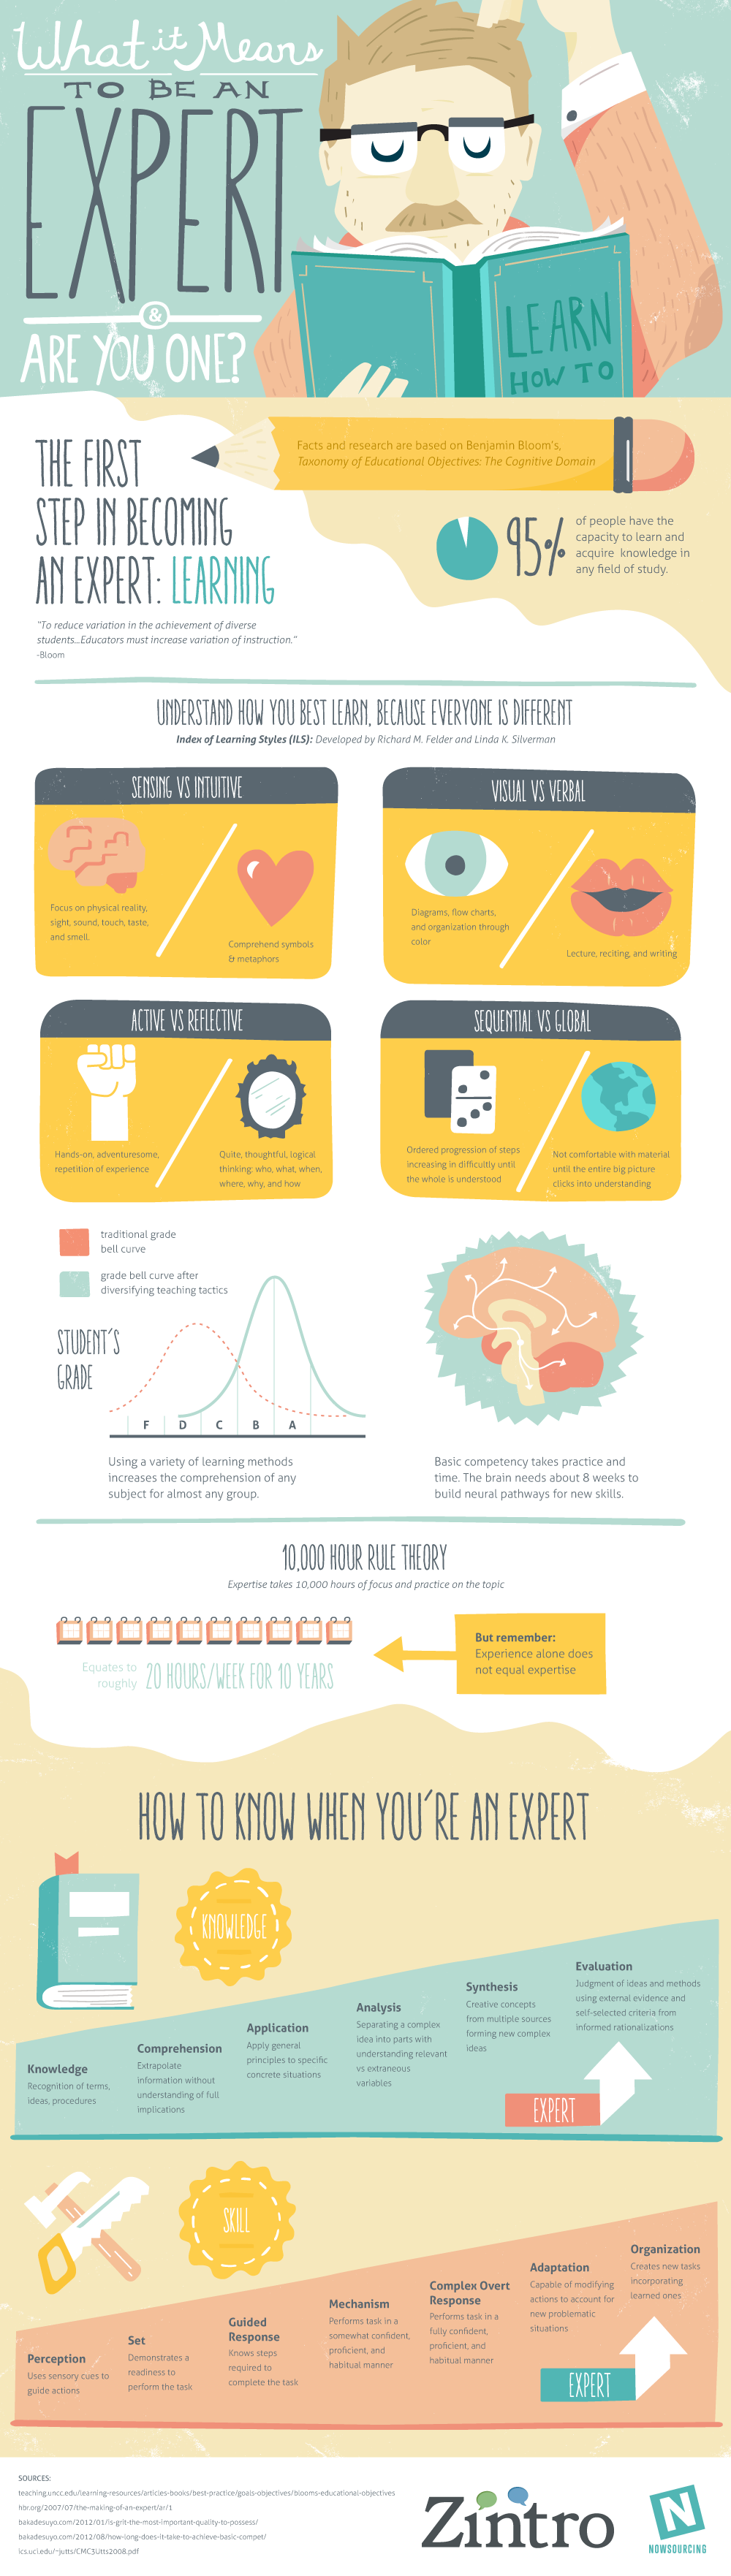 Infographic: What it Means To Be An Expert And Are You One?